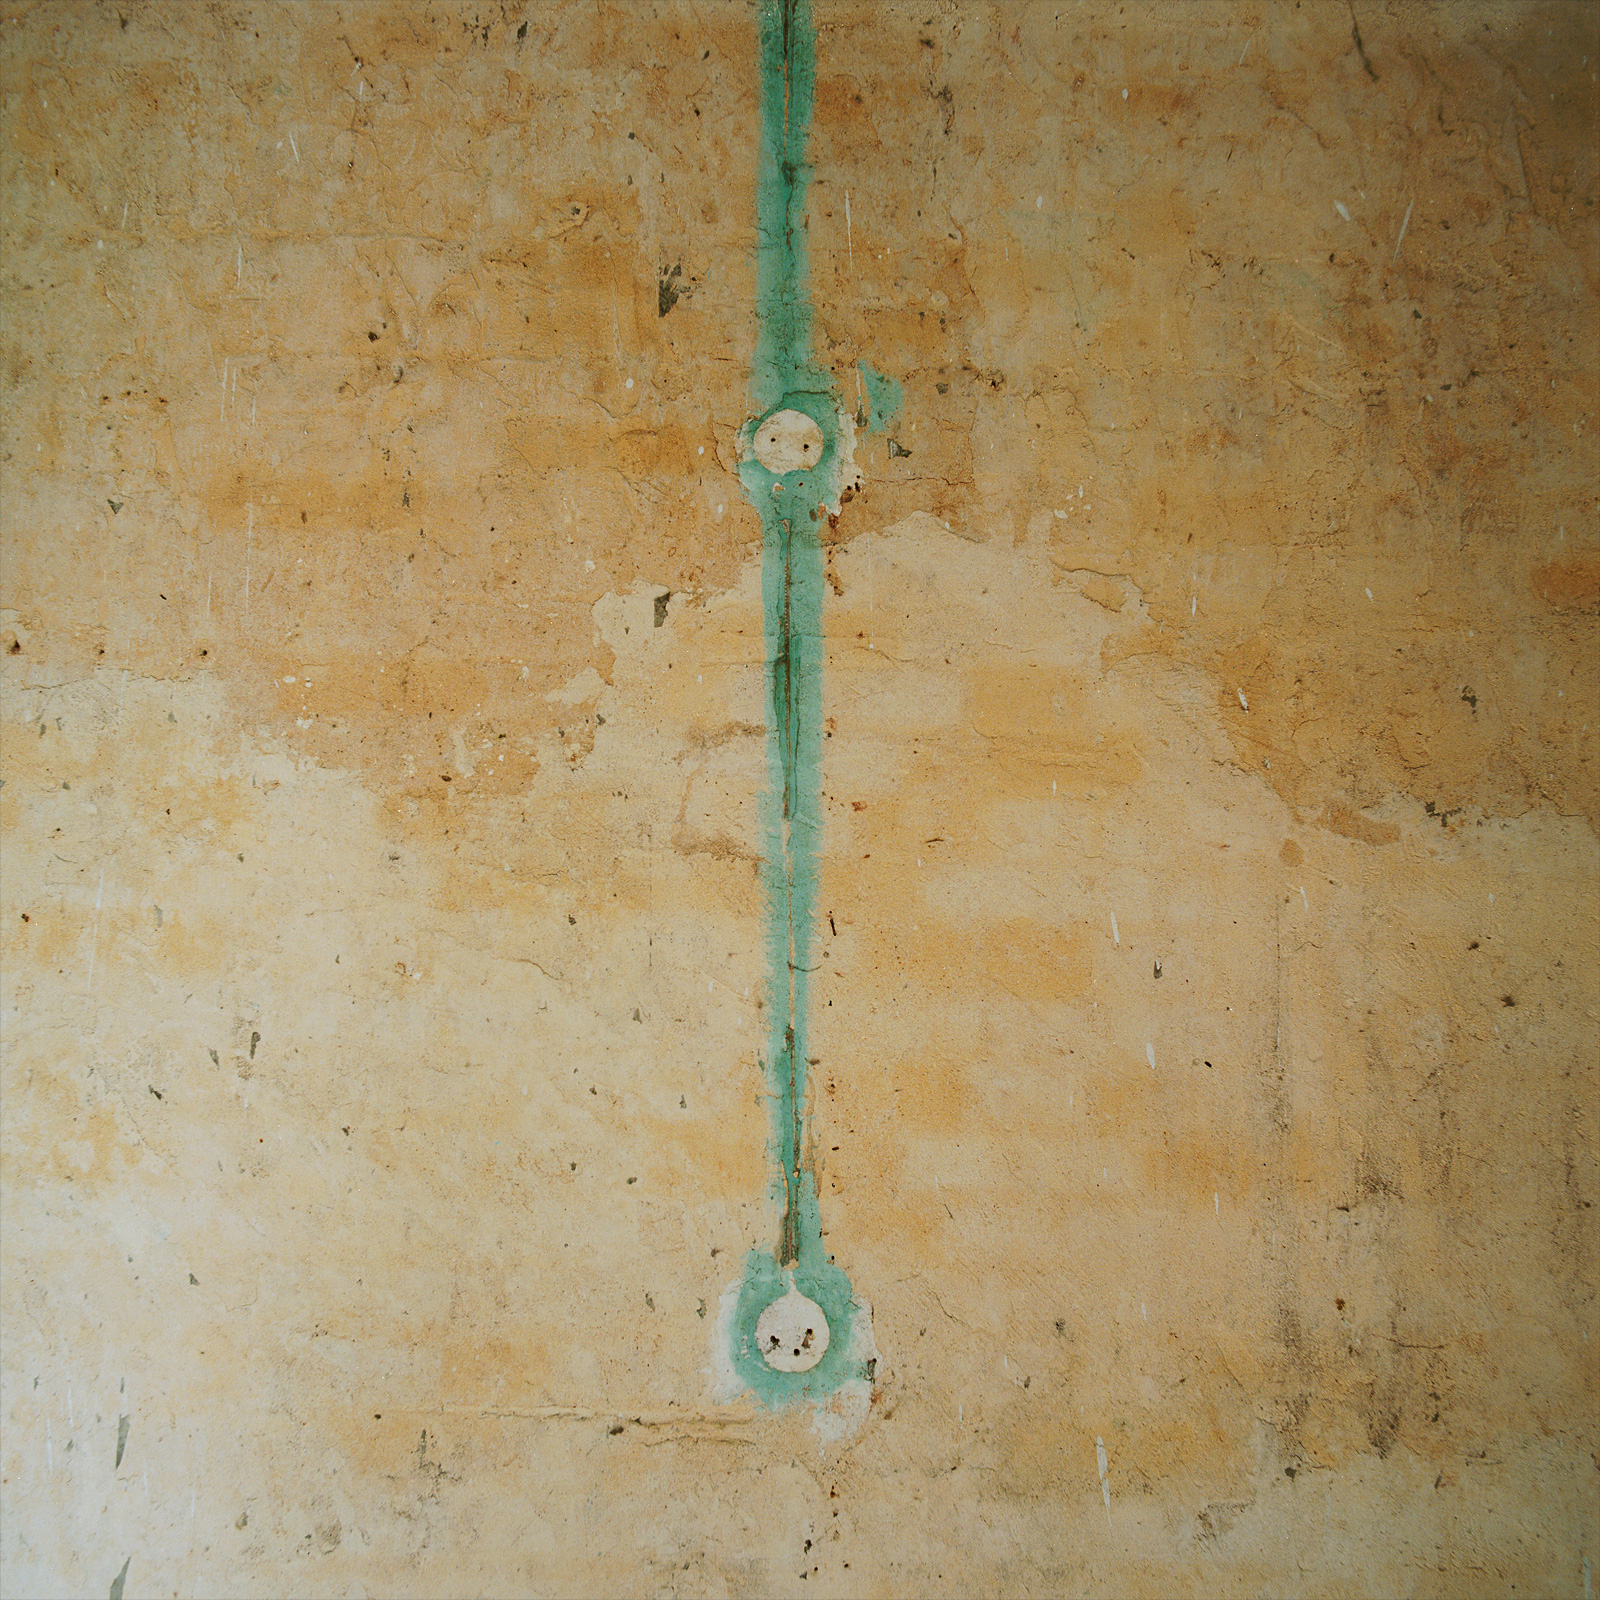 Wall texture with cable traces in one of the wings at Château Fossé, France.